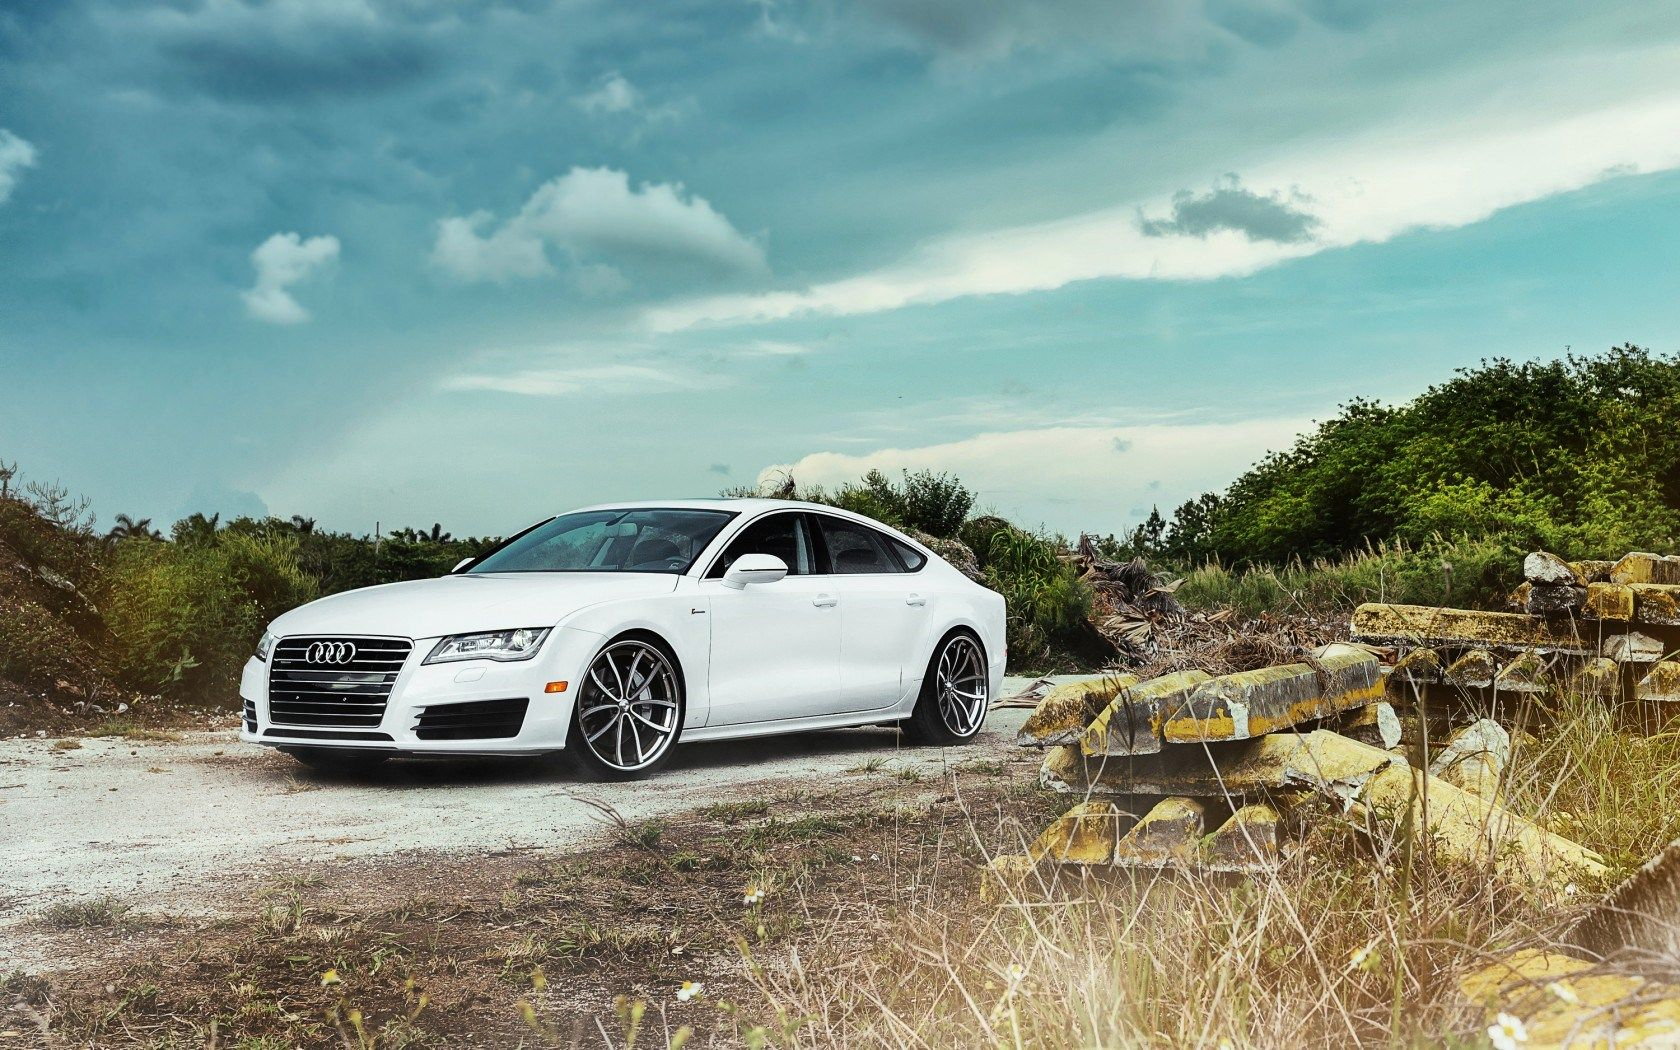 Cars Audi Roads R8 White V10 Wallpaper Allwallpaper In: Audi A7 White Road Nature